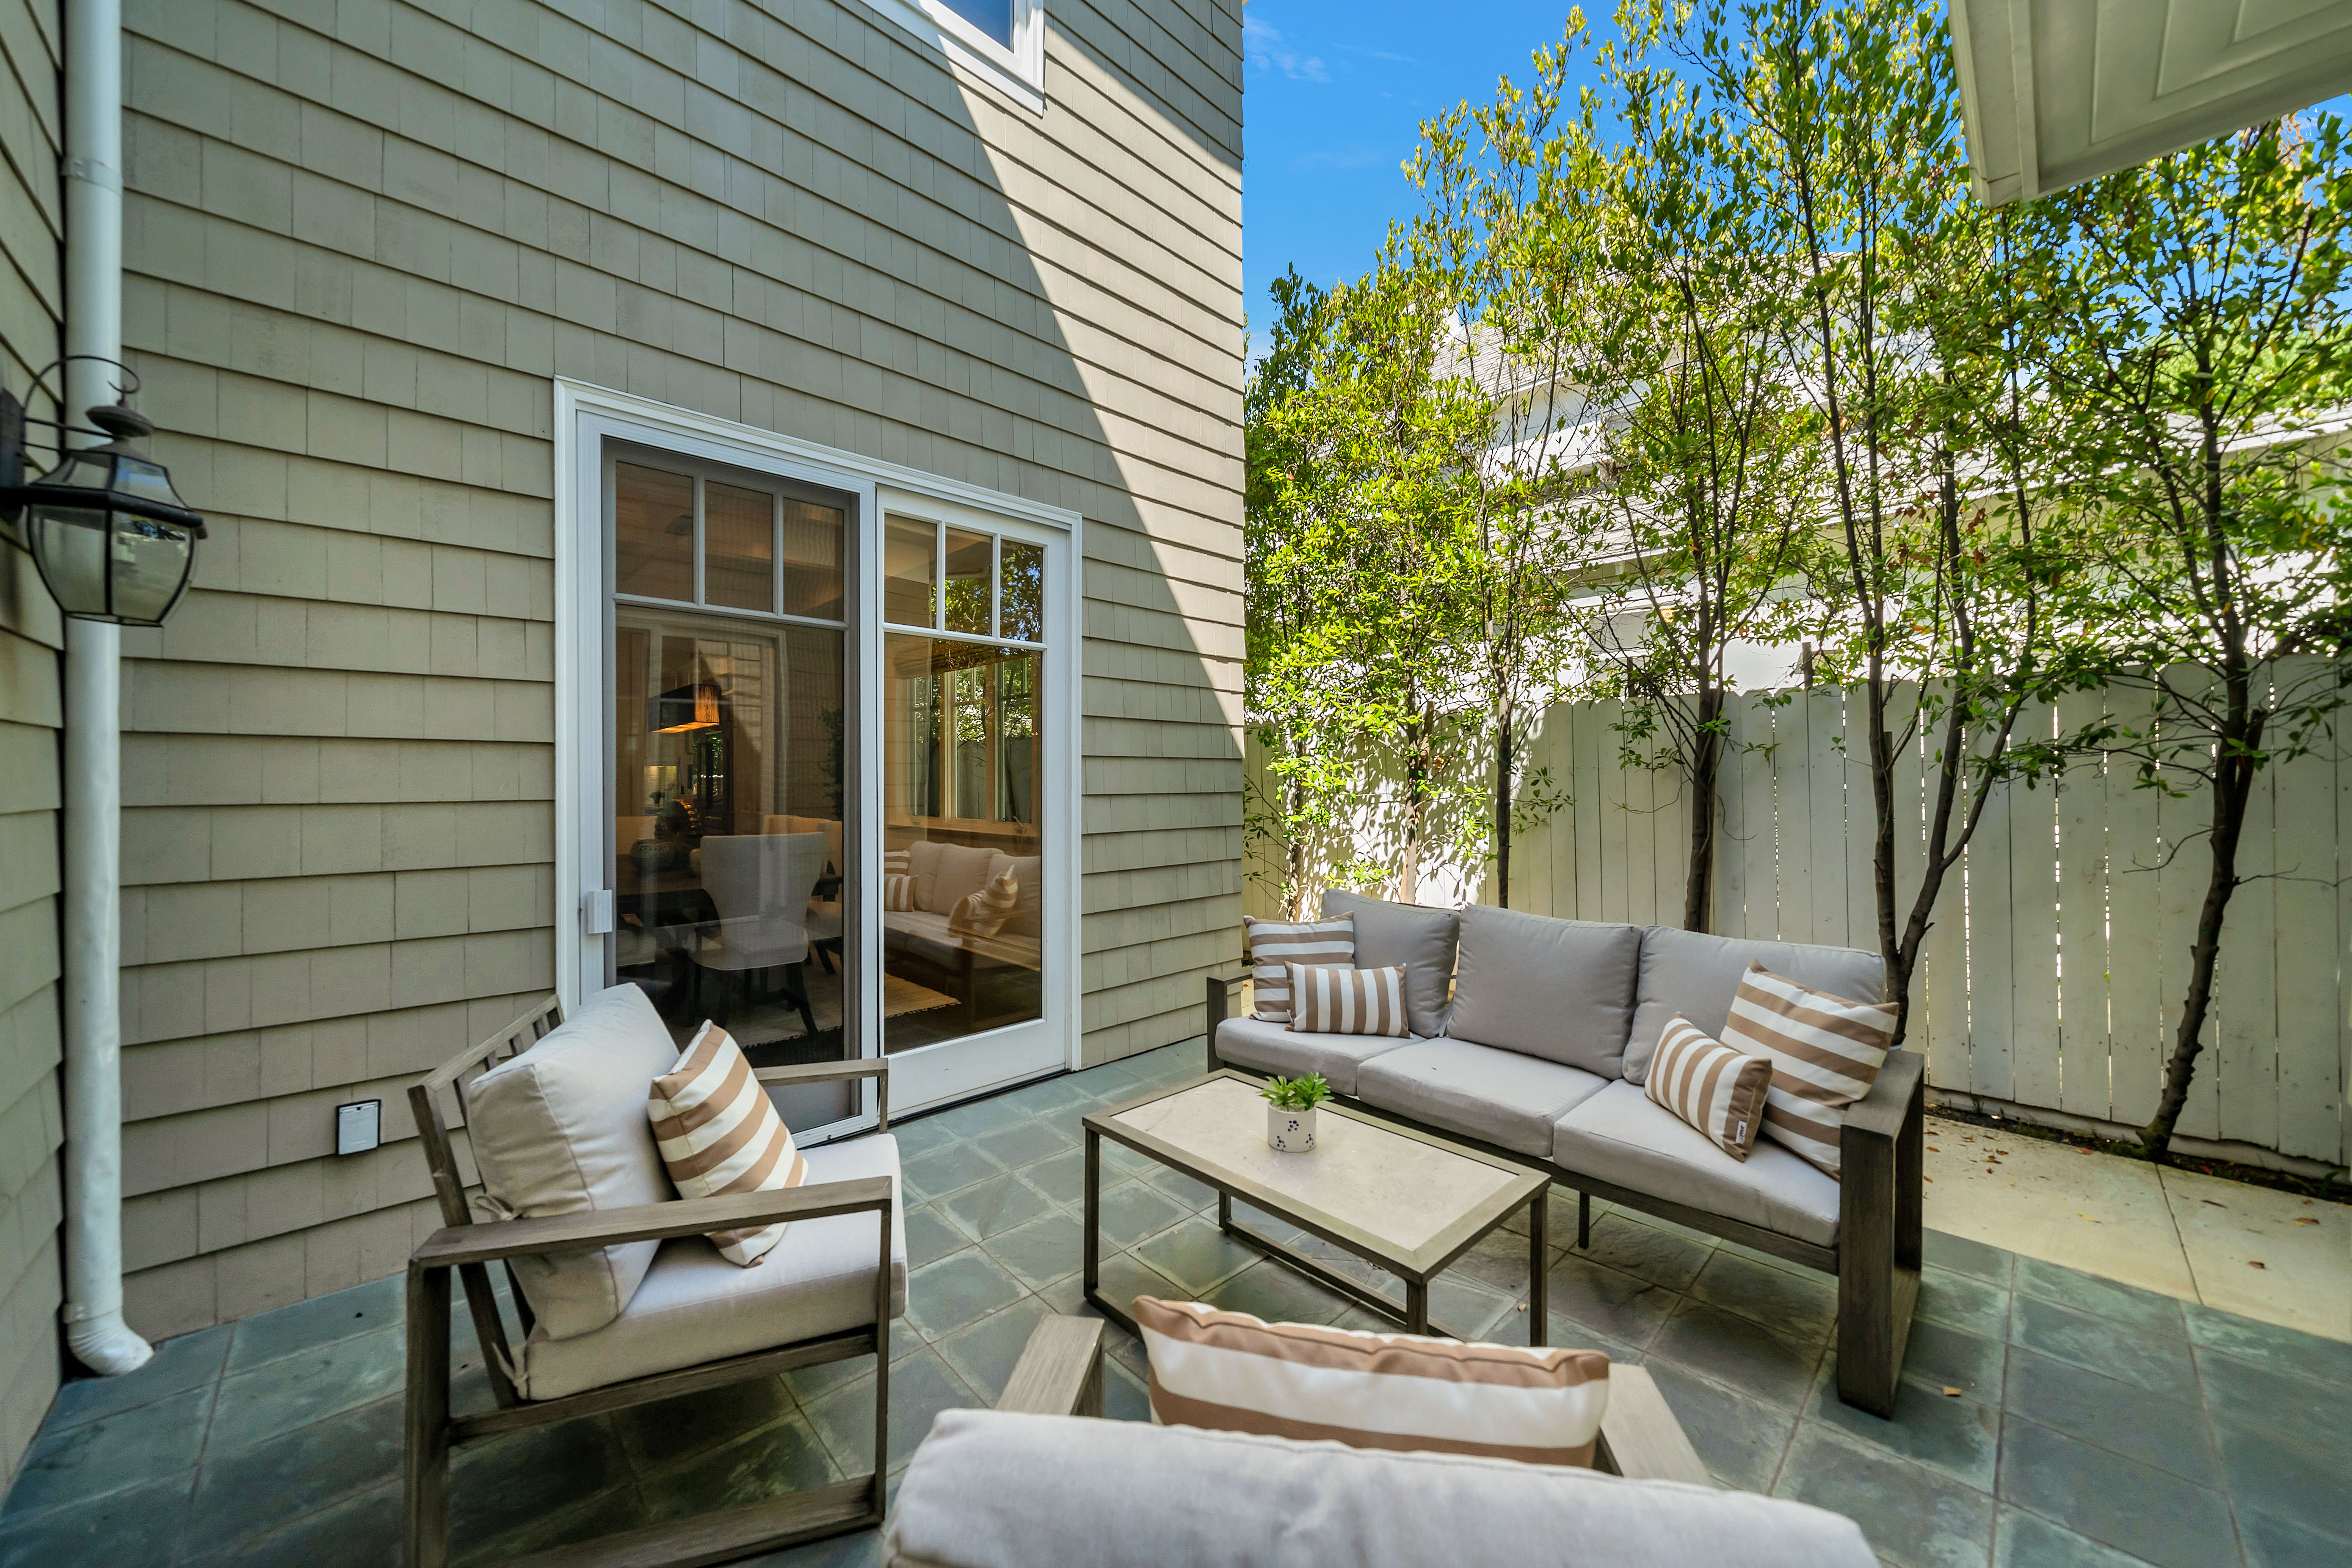 brentwood luxury home for sale with outdoor patio